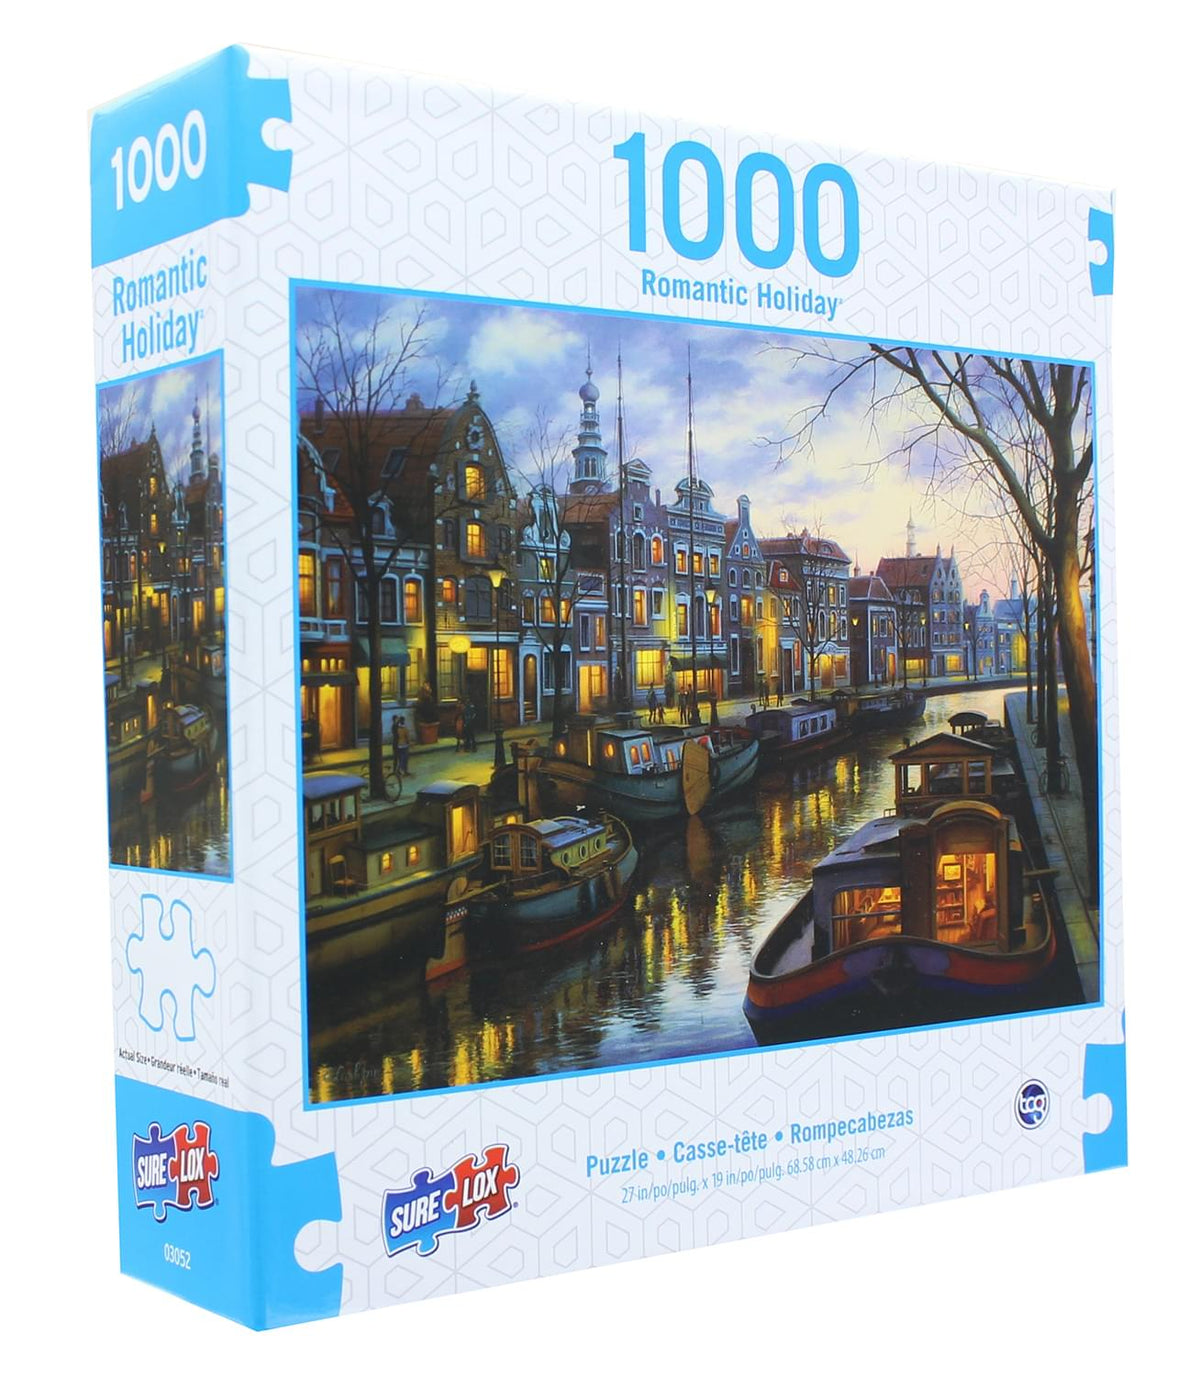 Romantic Holiday 1000 Piece Jigsaw Puzzle | Canal Life